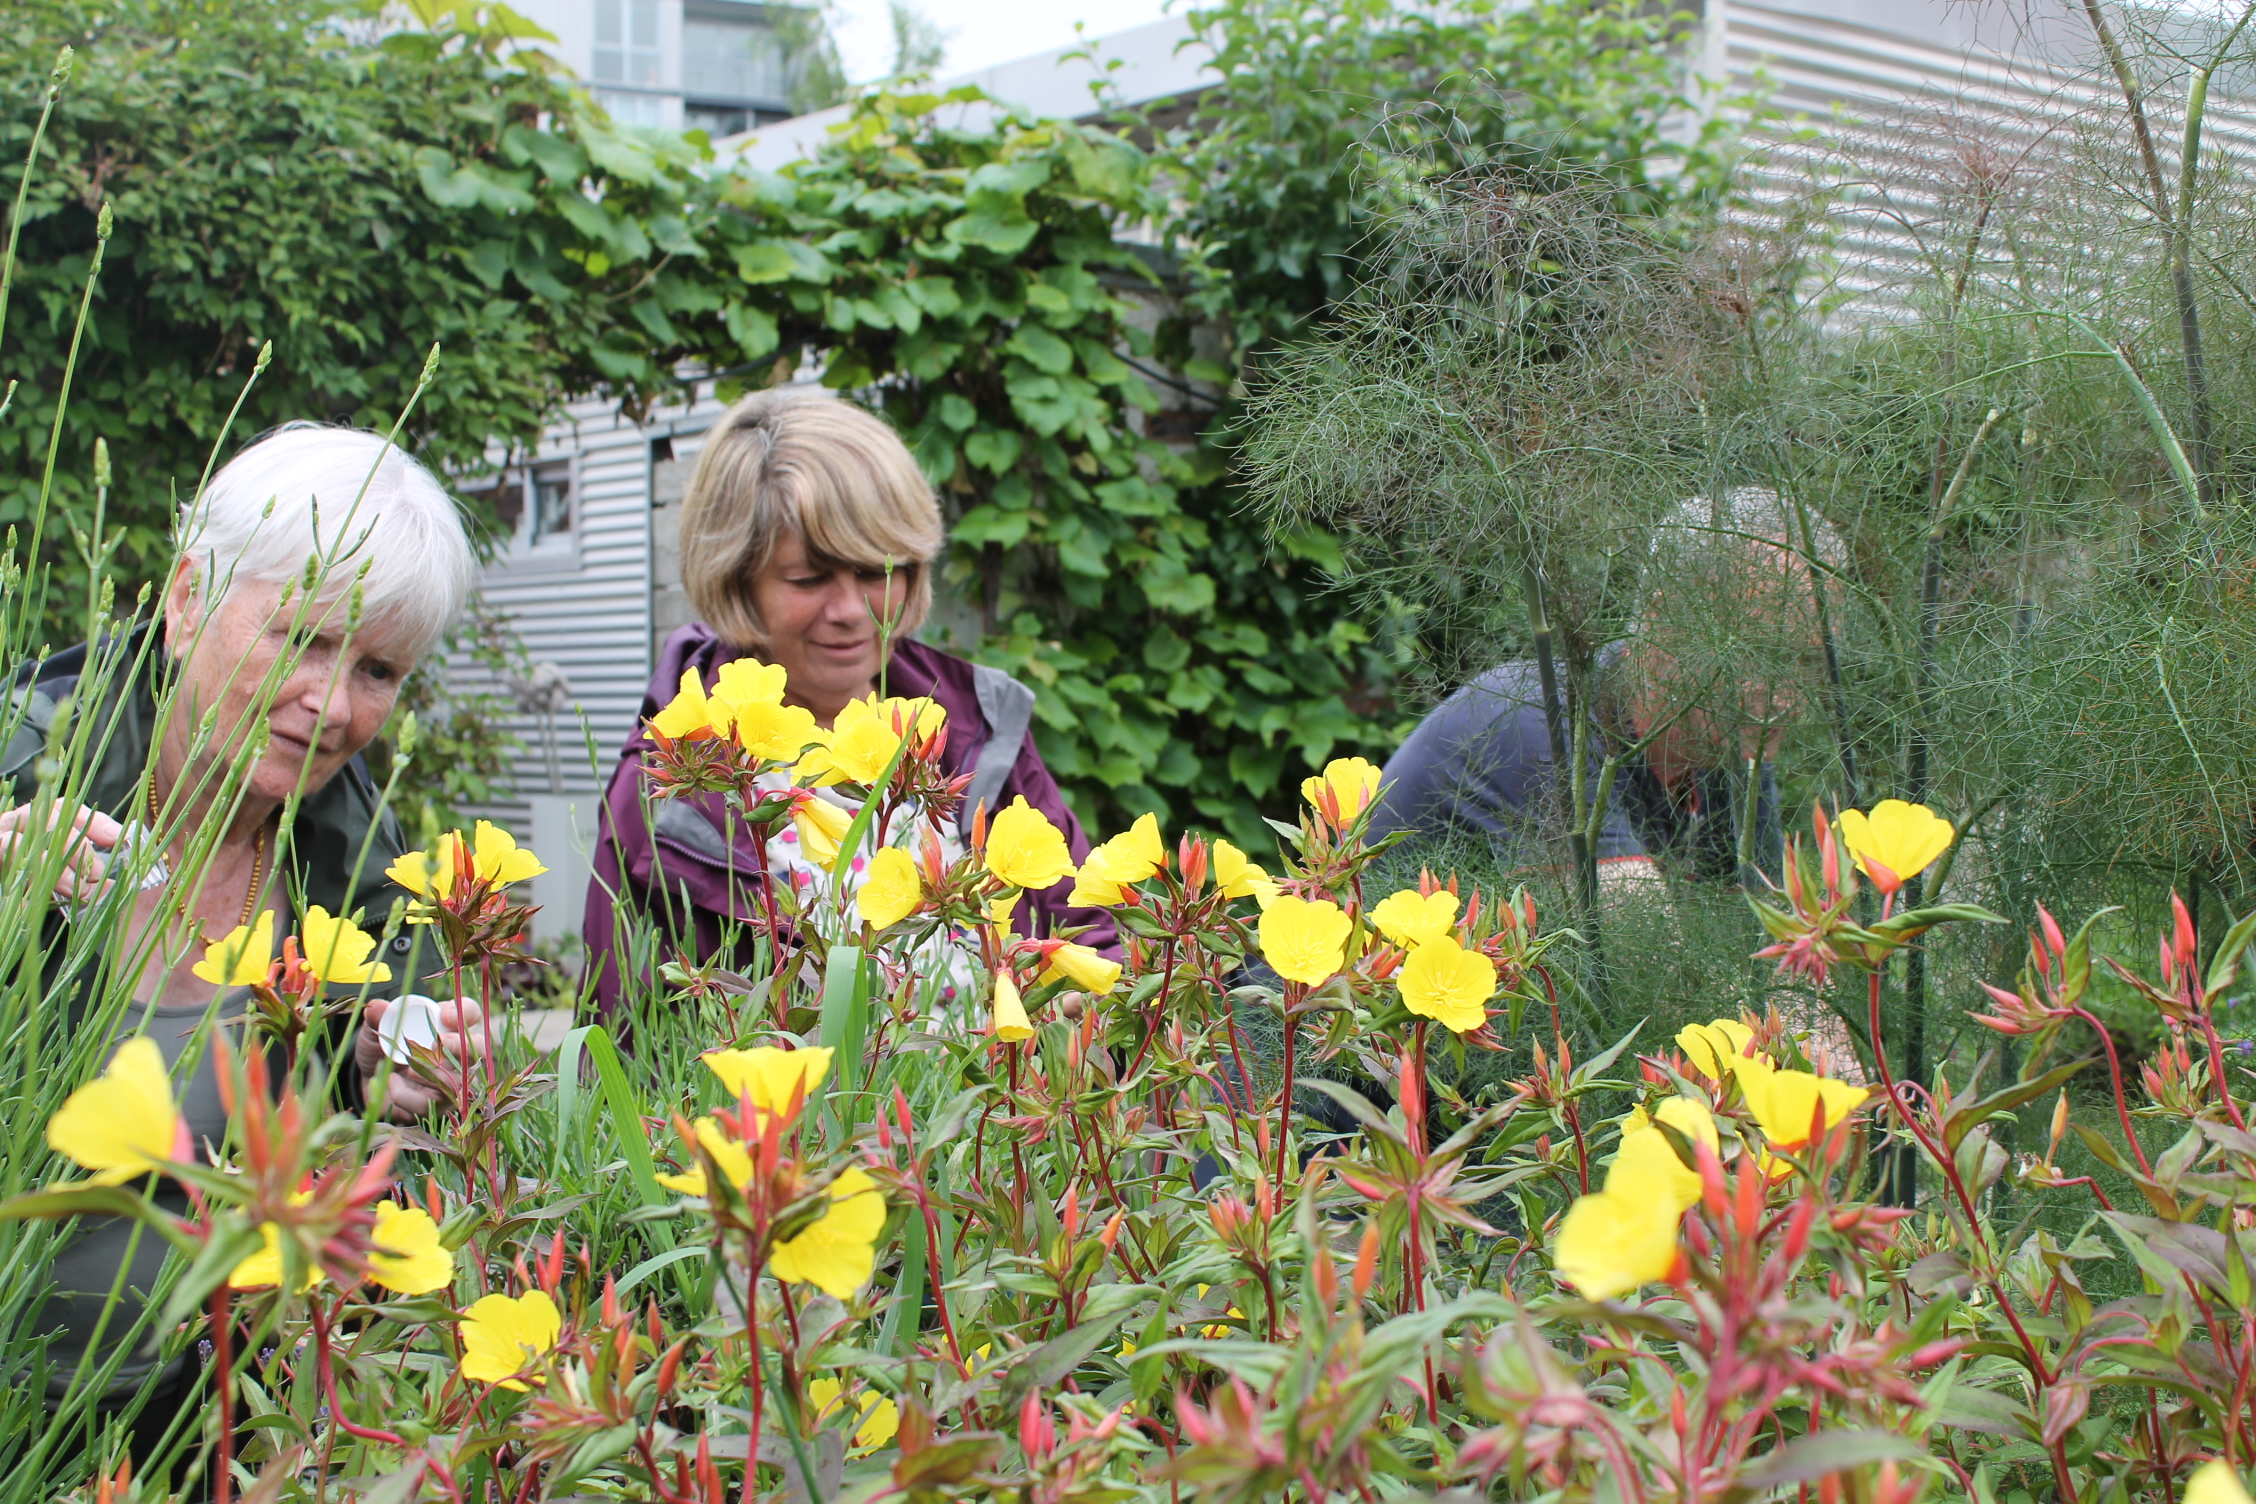 THE HIDDEN GARDENS GIVEN MAJOR FUNDING BOOST